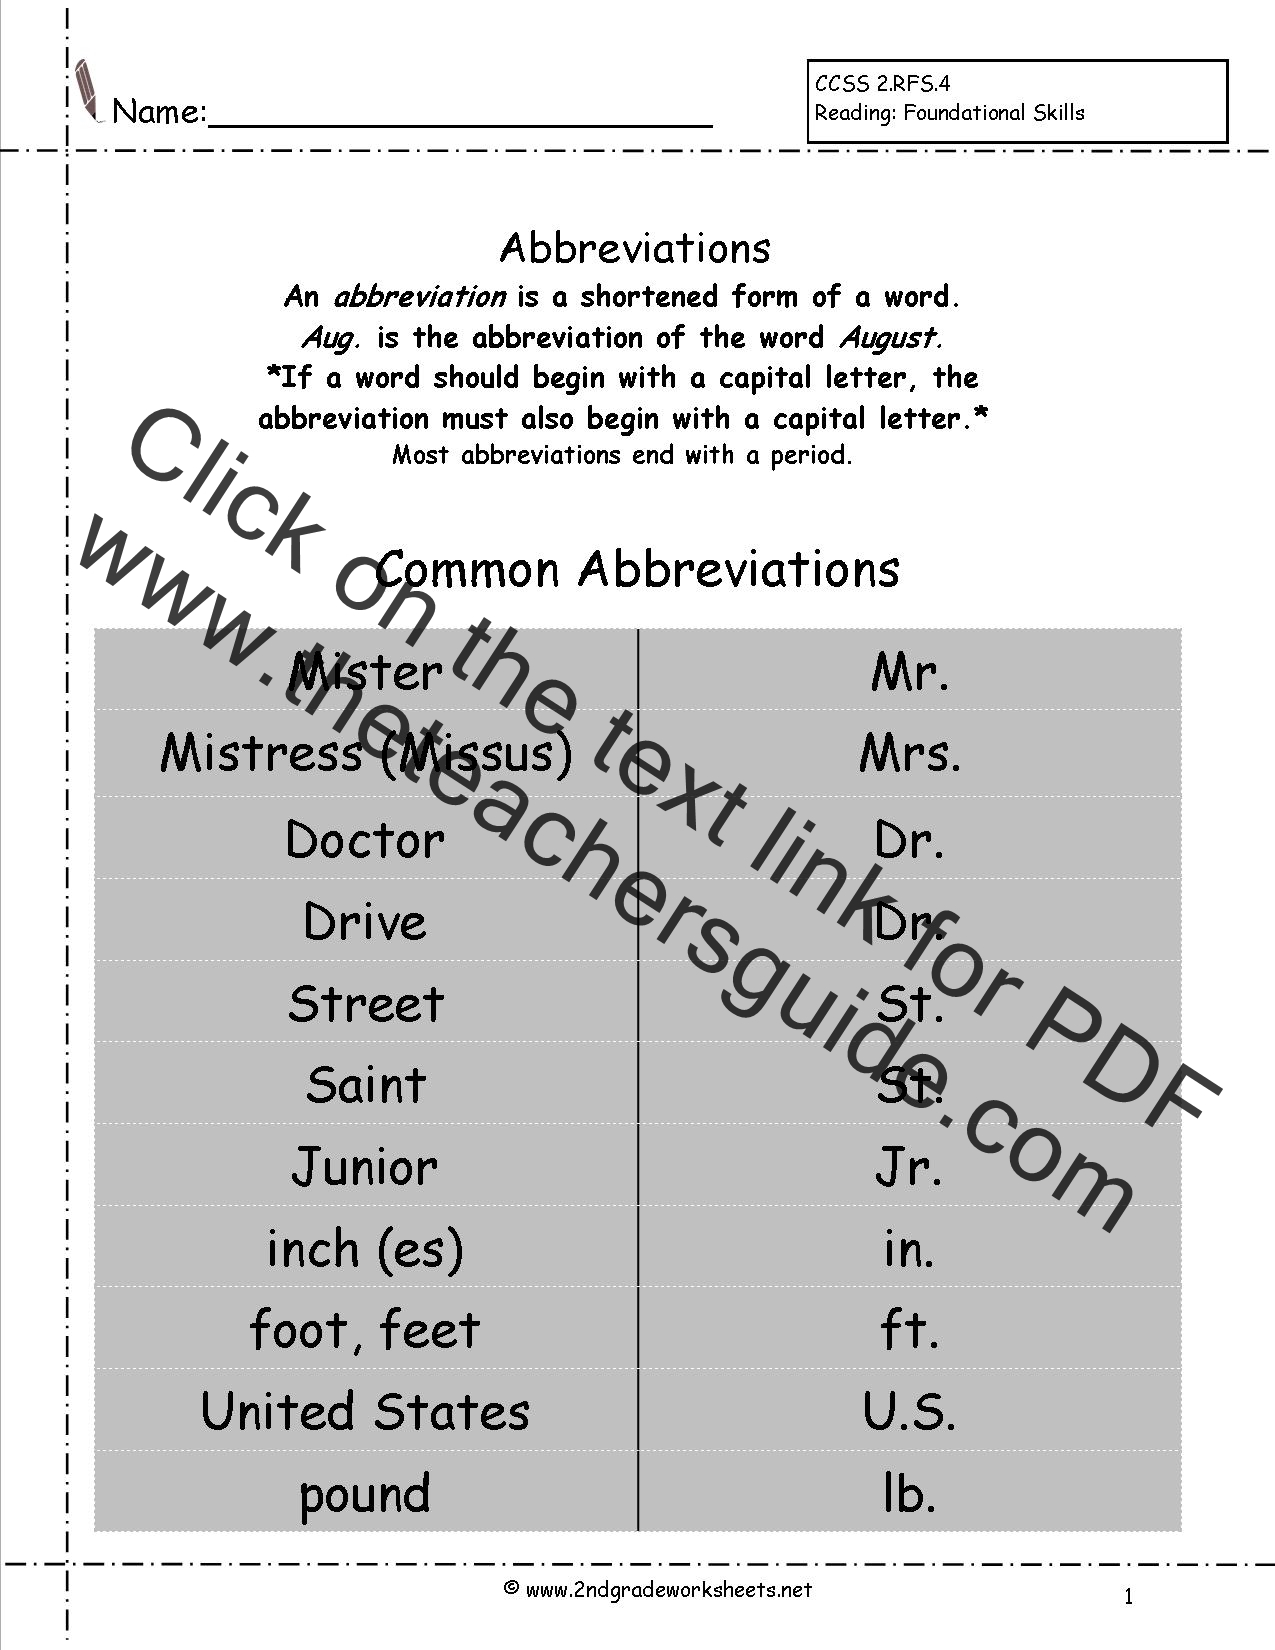 Worksheets 2nd Grade Grammar Worksheets free languagegrammar worksheets and printouts abbreviaitons worksheets